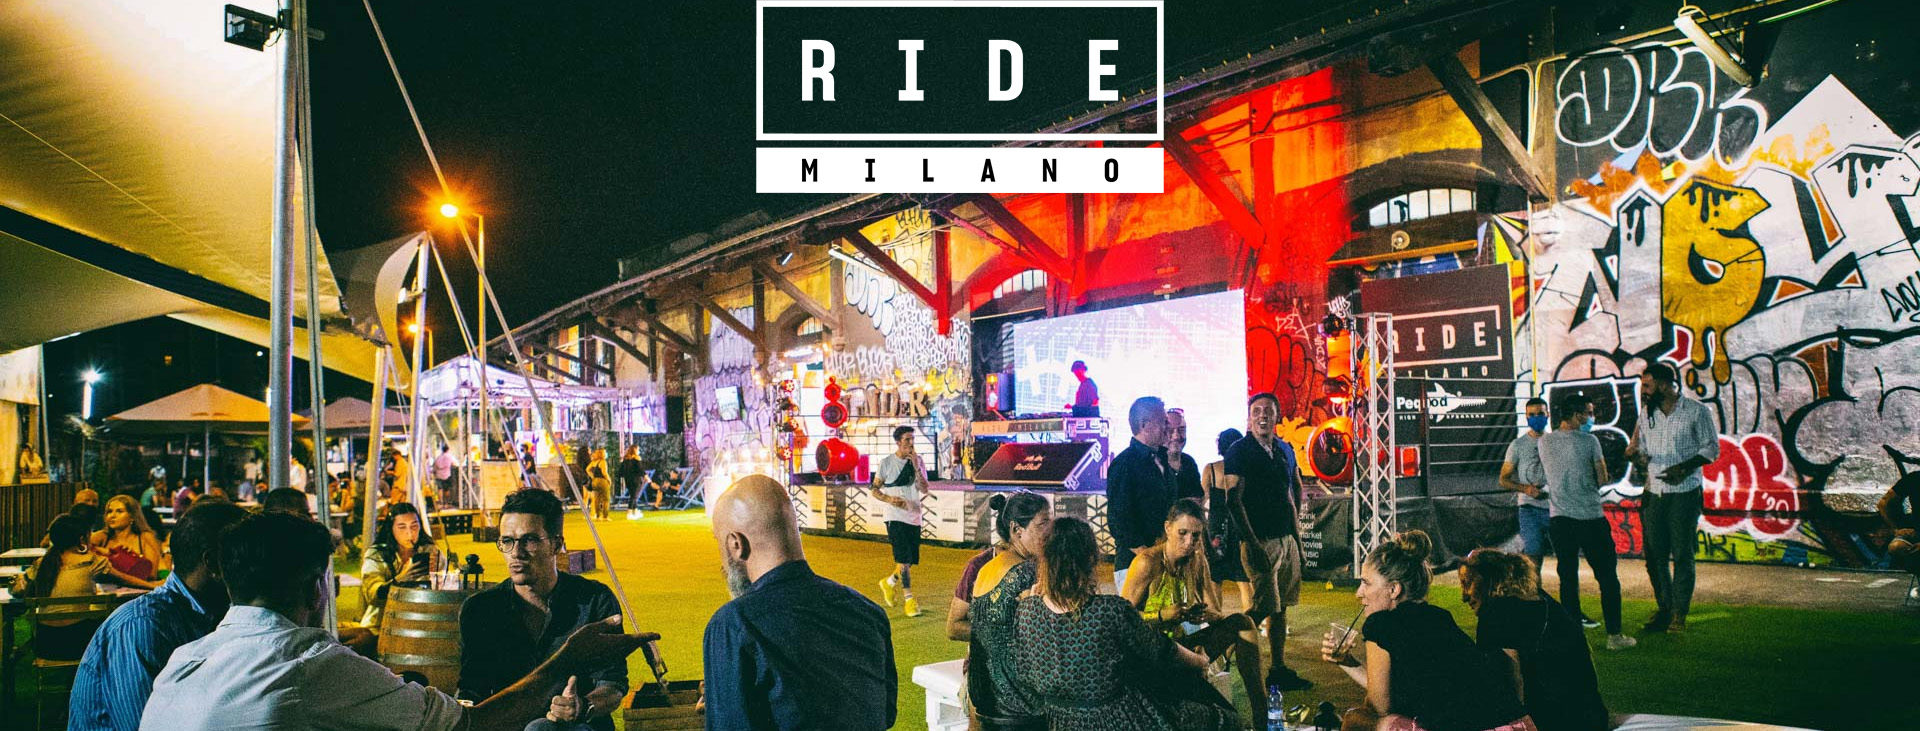 RIDE MILANO